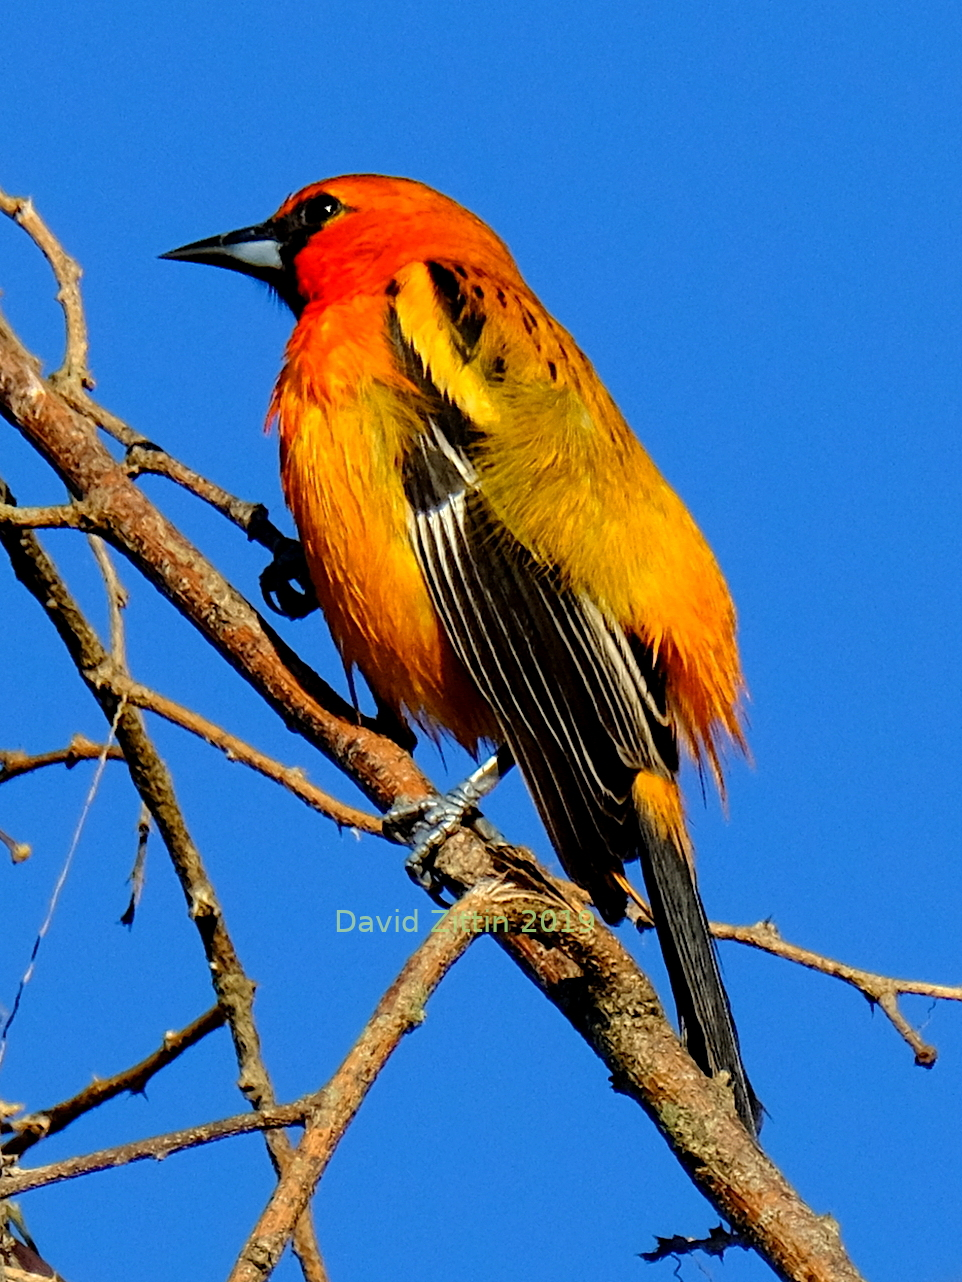 Streak-backed Oriole. Photo taken near Sayulita, Nayarit, Mexico